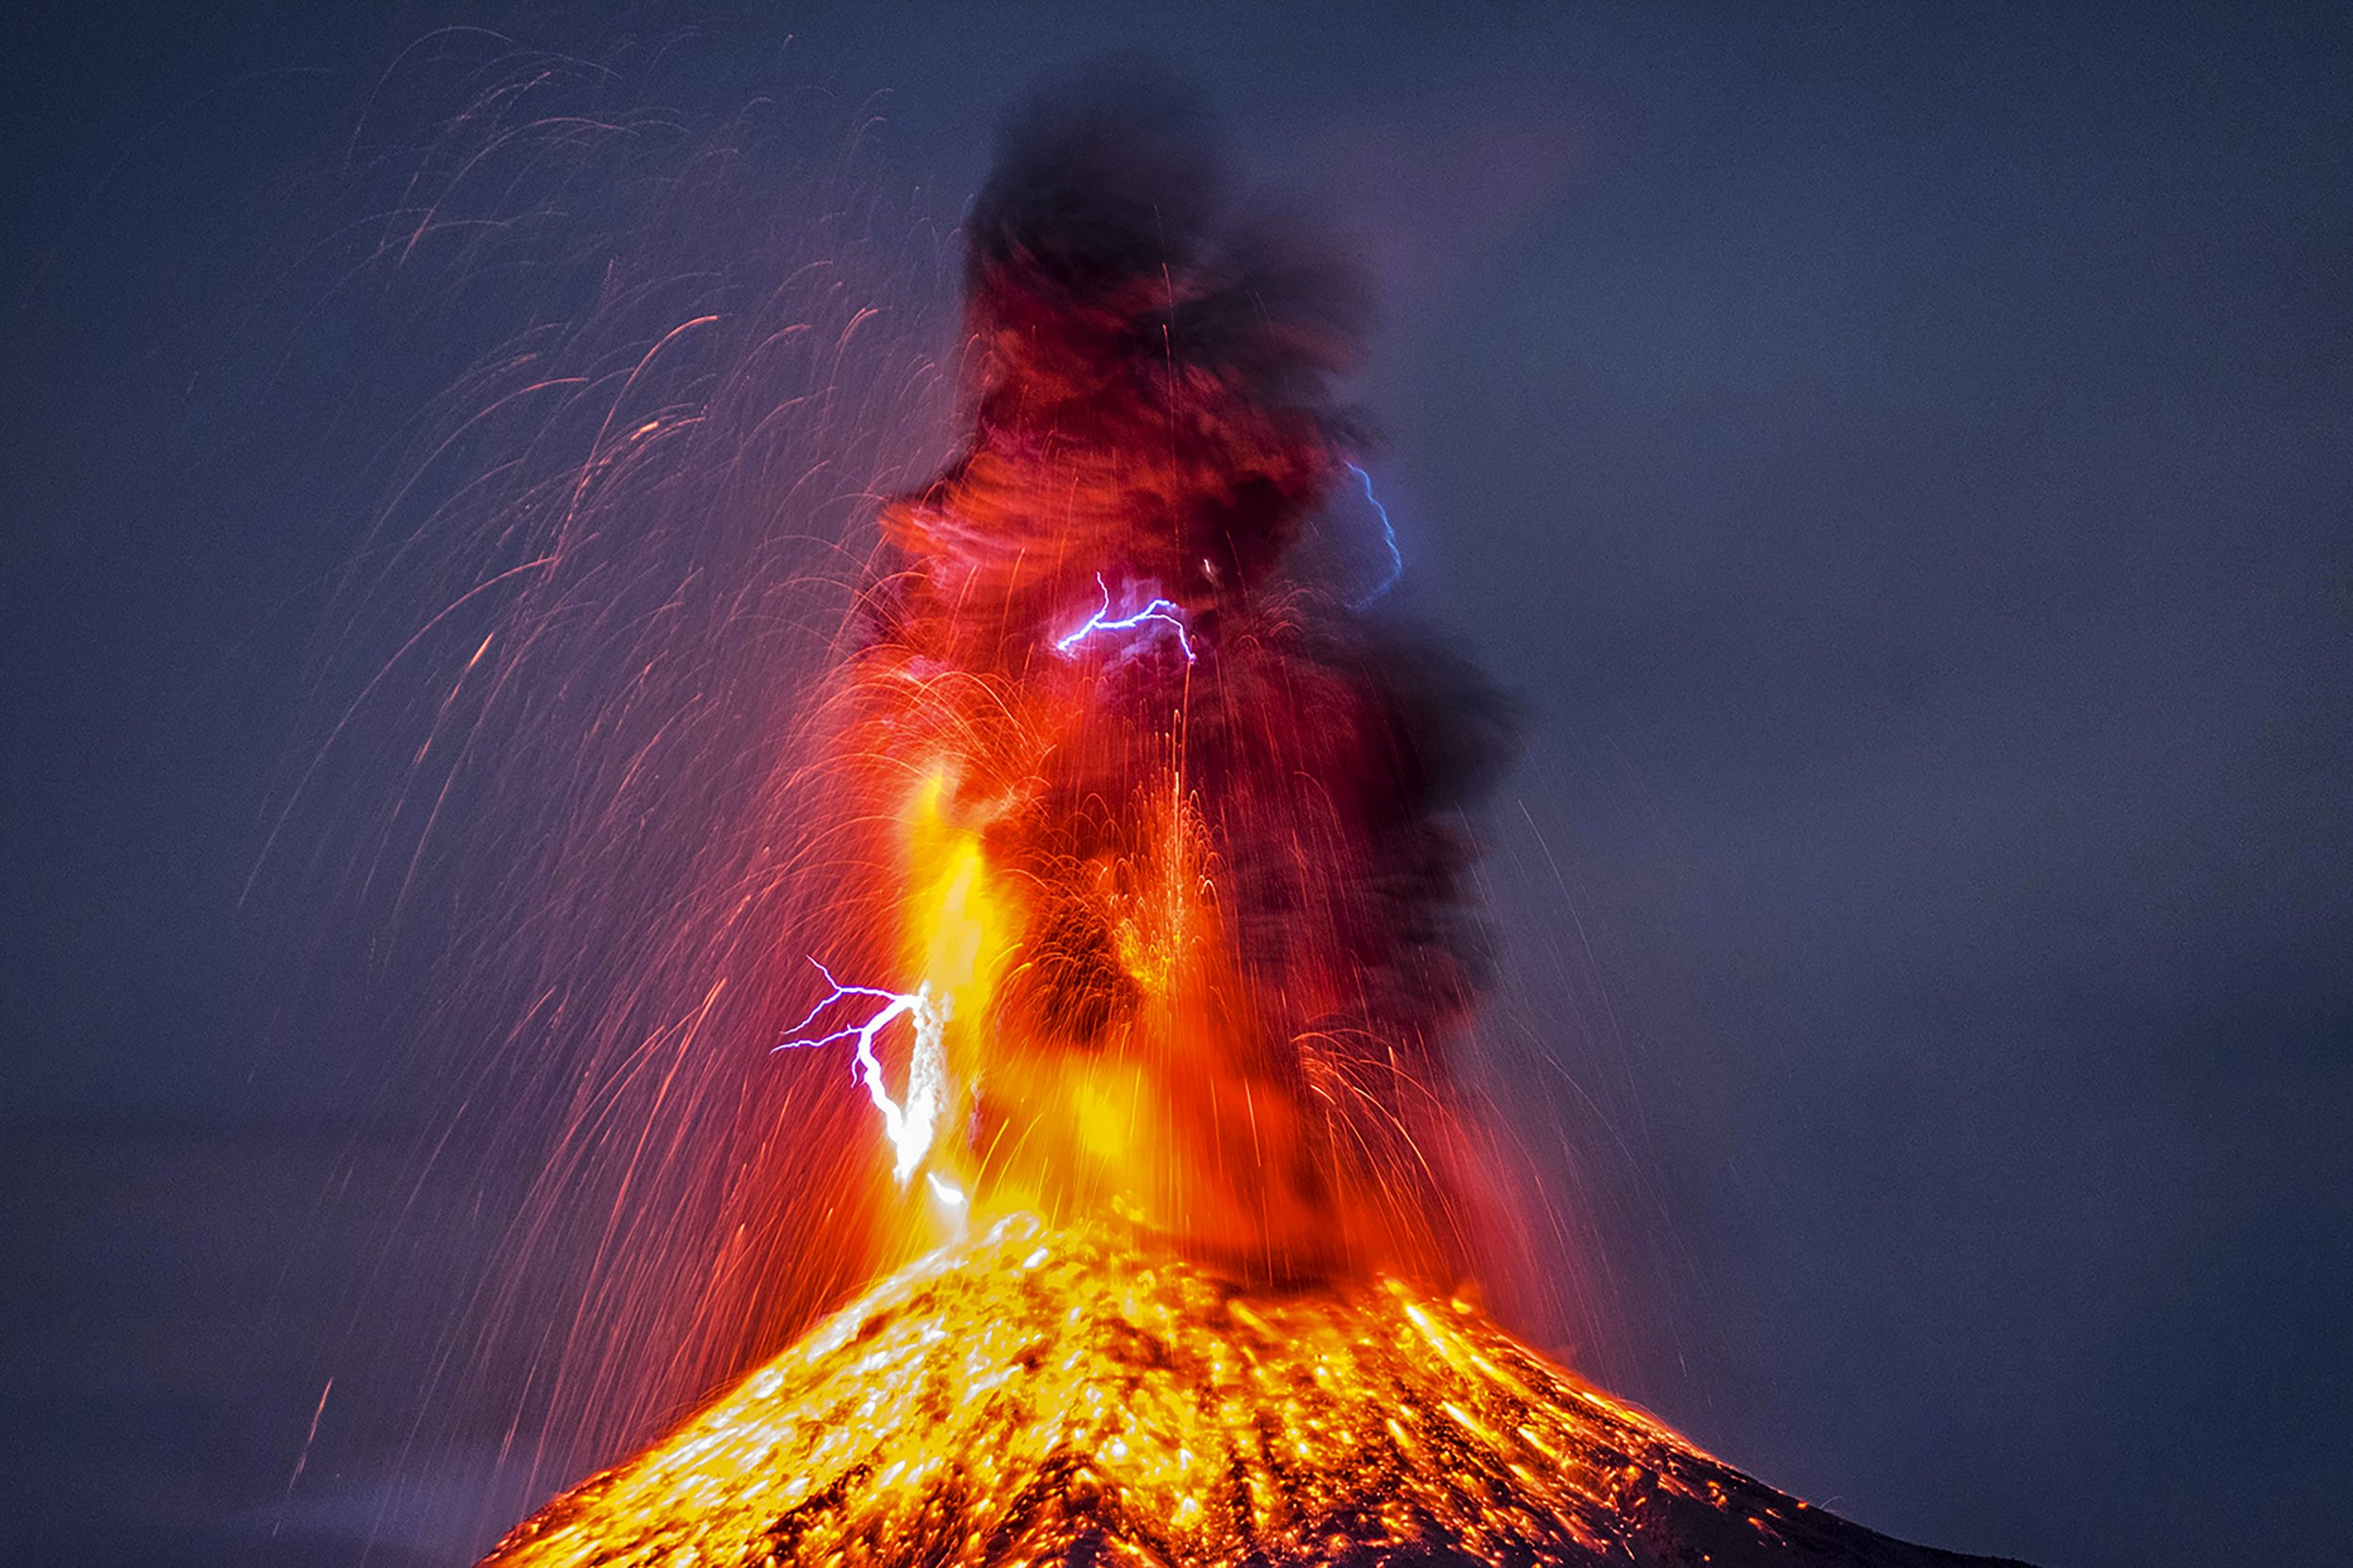 PIC BY HERNANDO RIVERA/MERCURY PRESS (PICTURED: THE INCREDIBLE LIGHTNING STRIKING THE ERUPTING LAVA AS IT SPEWS OUT OF THE VOLCAN DE COLIMA IN CENTRAL MEXICO. PIC DATE: 26.01.17) A graphic designer camped out in freezing cold conditions to capture a spectacular shot of an erupting volcano - only for a LIGHTNING BOLT to strike the lava spurt. Hernando Rivera struck gold with the dazzling star-spangled snaps as he sat opposite the famous Volc·n de Colima in central Mexico. The photographer took up the perfect vantage point 12km from the centuries-old volcano, which is currently active and surrounded by an 8km exclusion zone. His stunning series of pictures, taken last Thursday, show white-hot lava spouting from the crater 12,500ft above sea level, with the lightning bolt emerging from clouds of black smoke. SEE MERCURY COPY